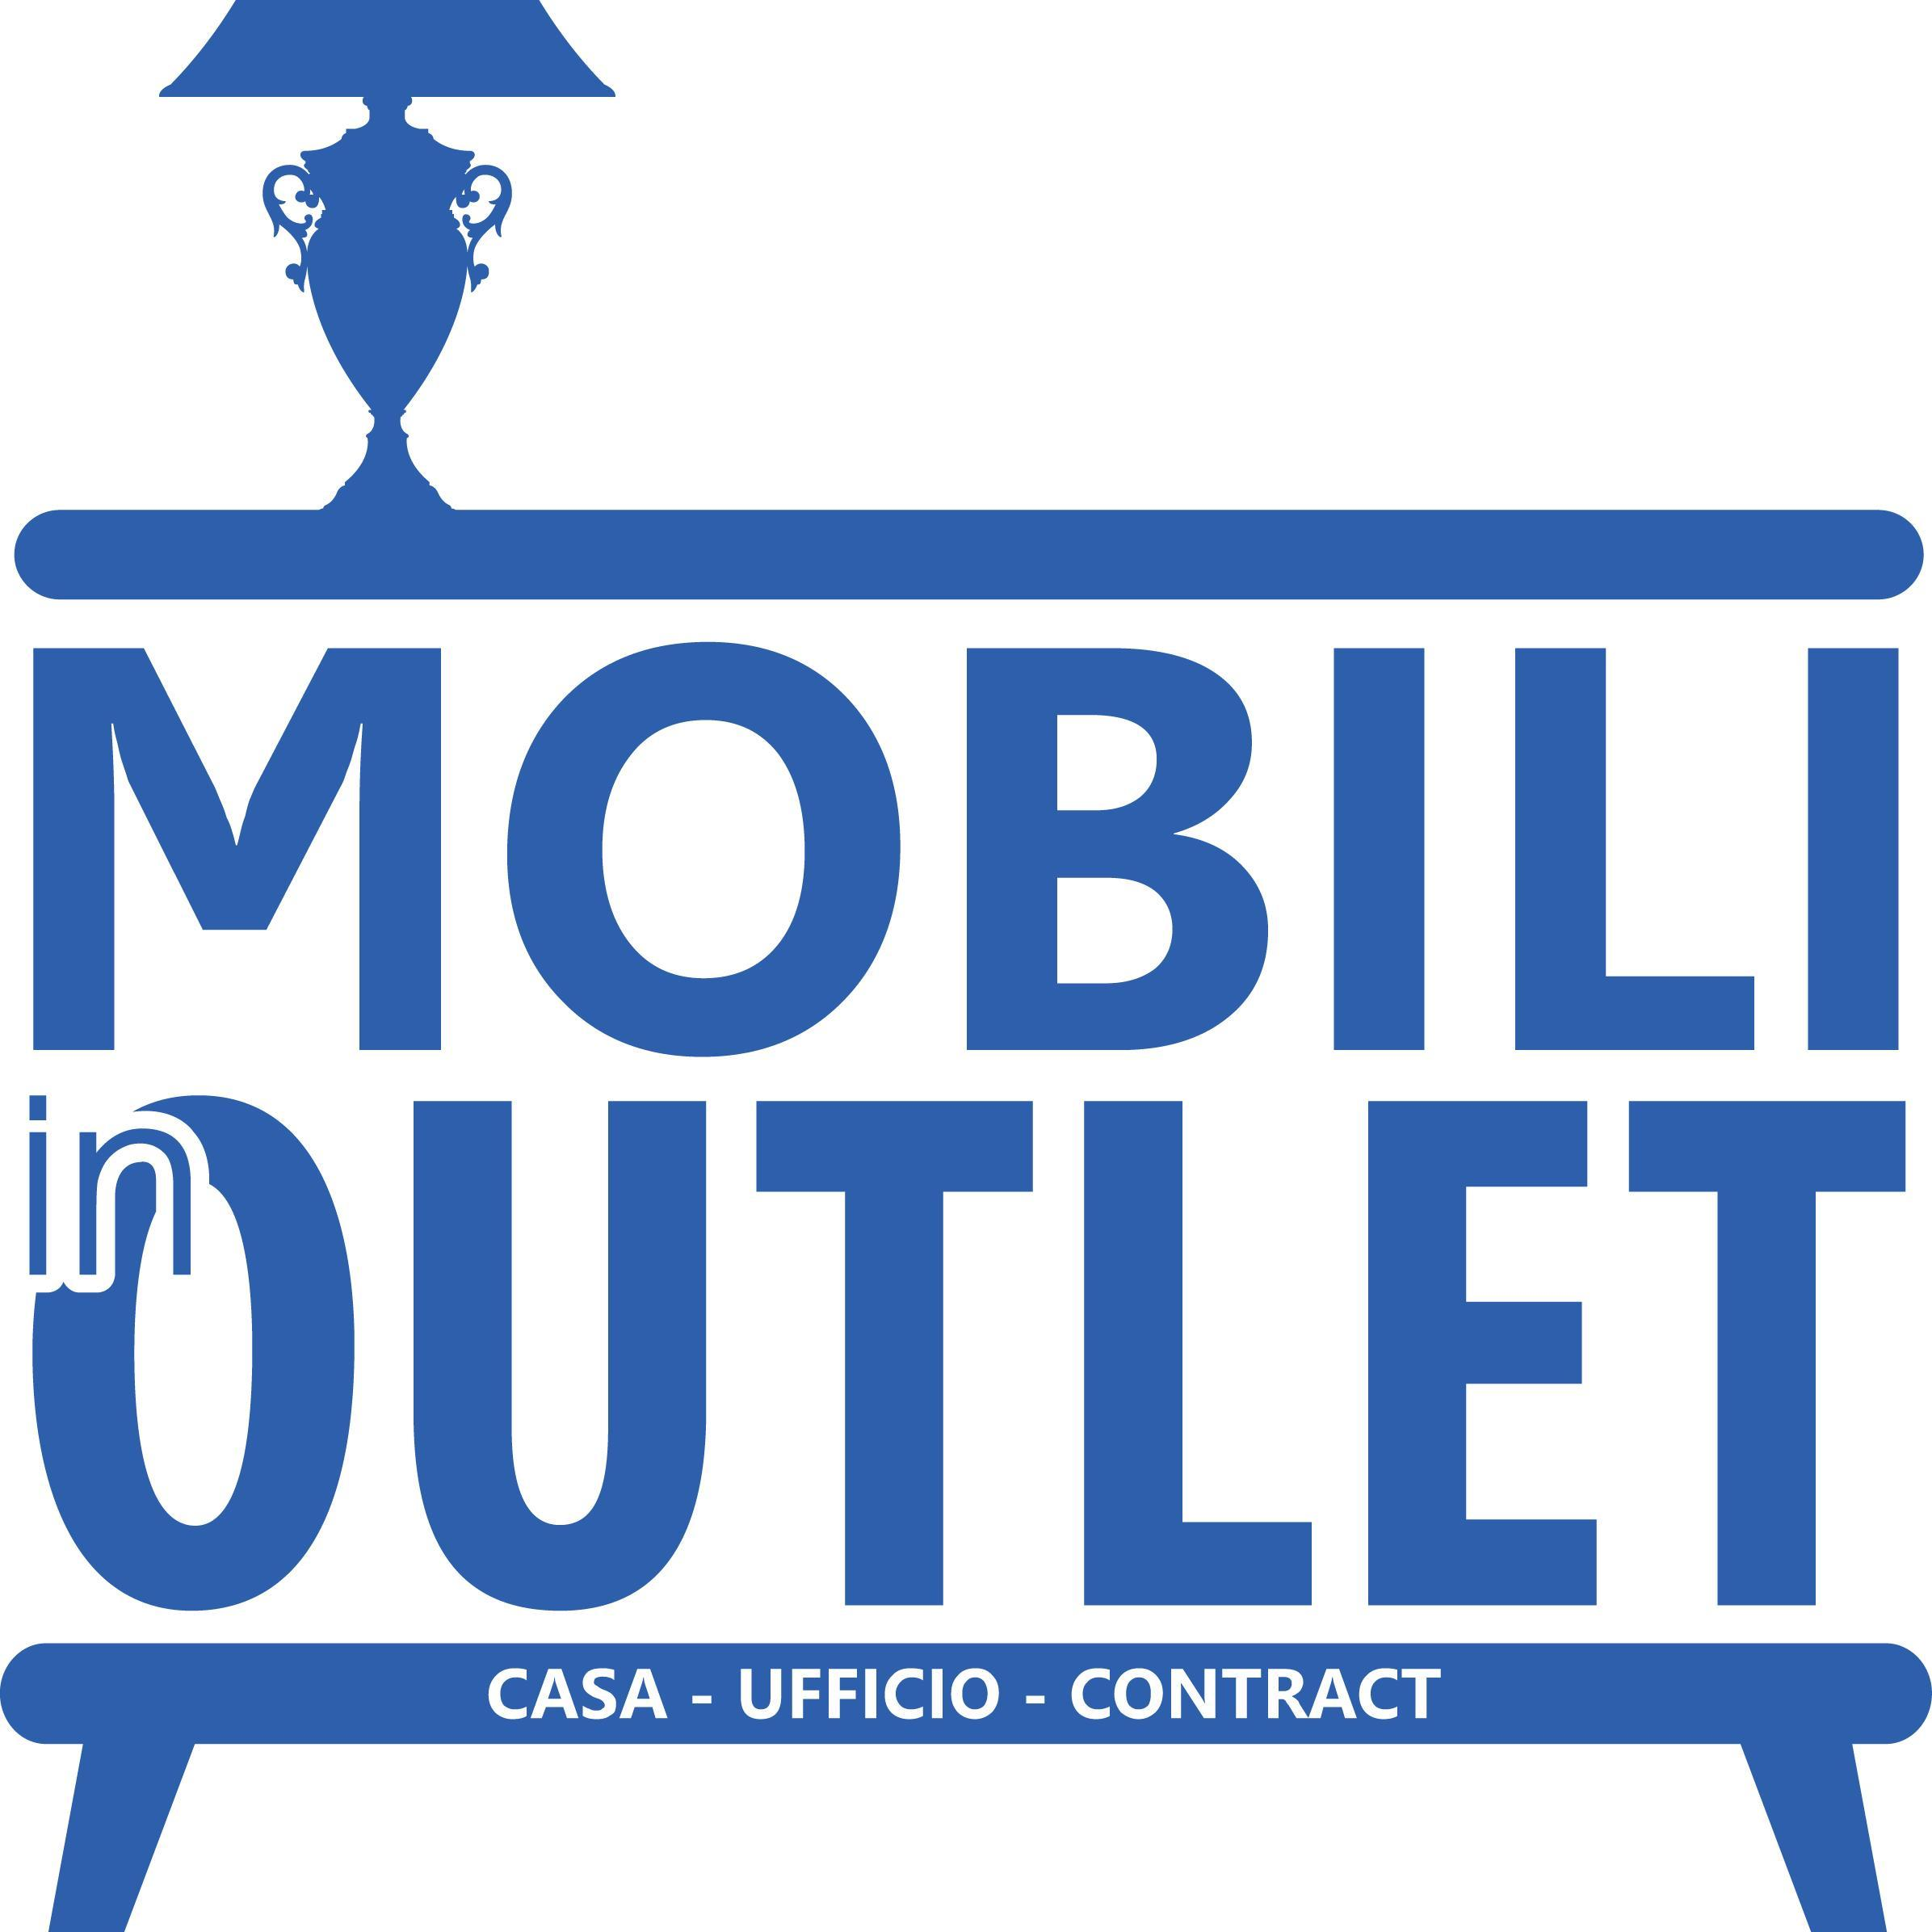 Outlet mobili outletmobilial twitter for Outlet mobili abruzzo